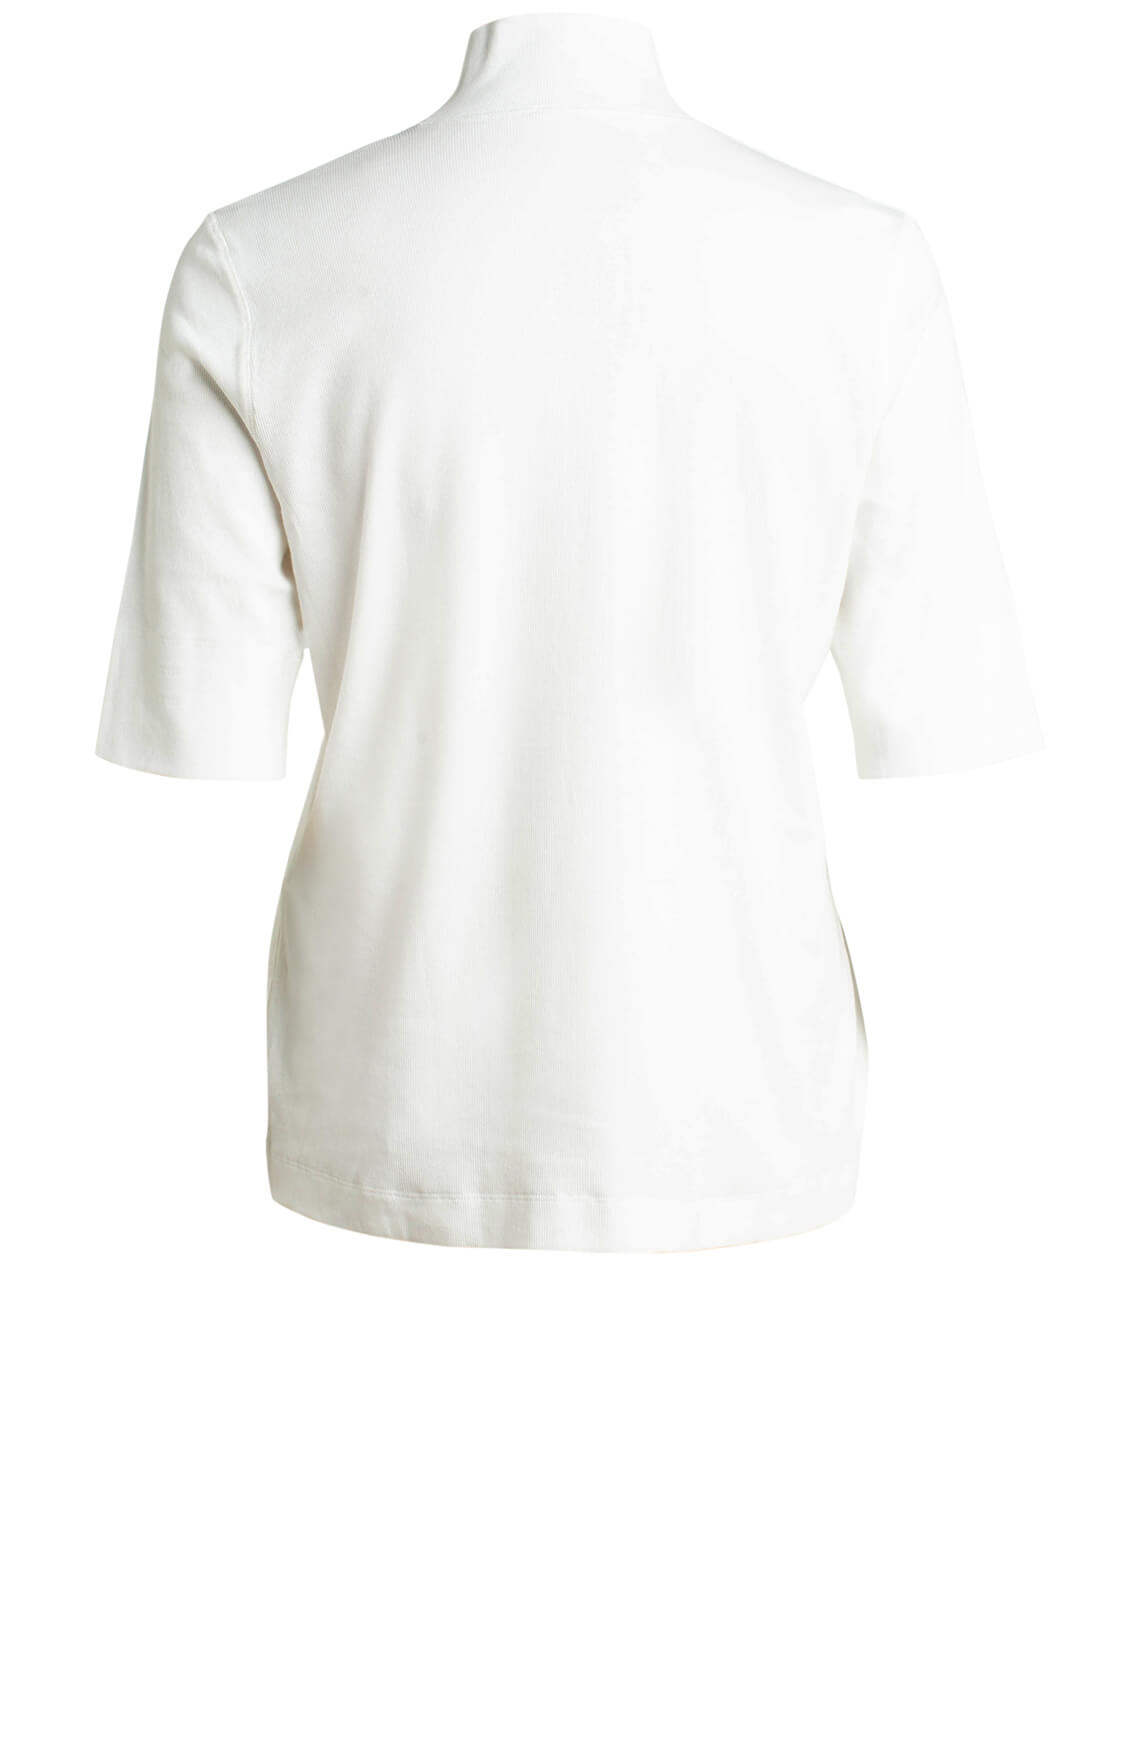 Marccain Sports Essentiels Dames Fijngeribd shirt wit